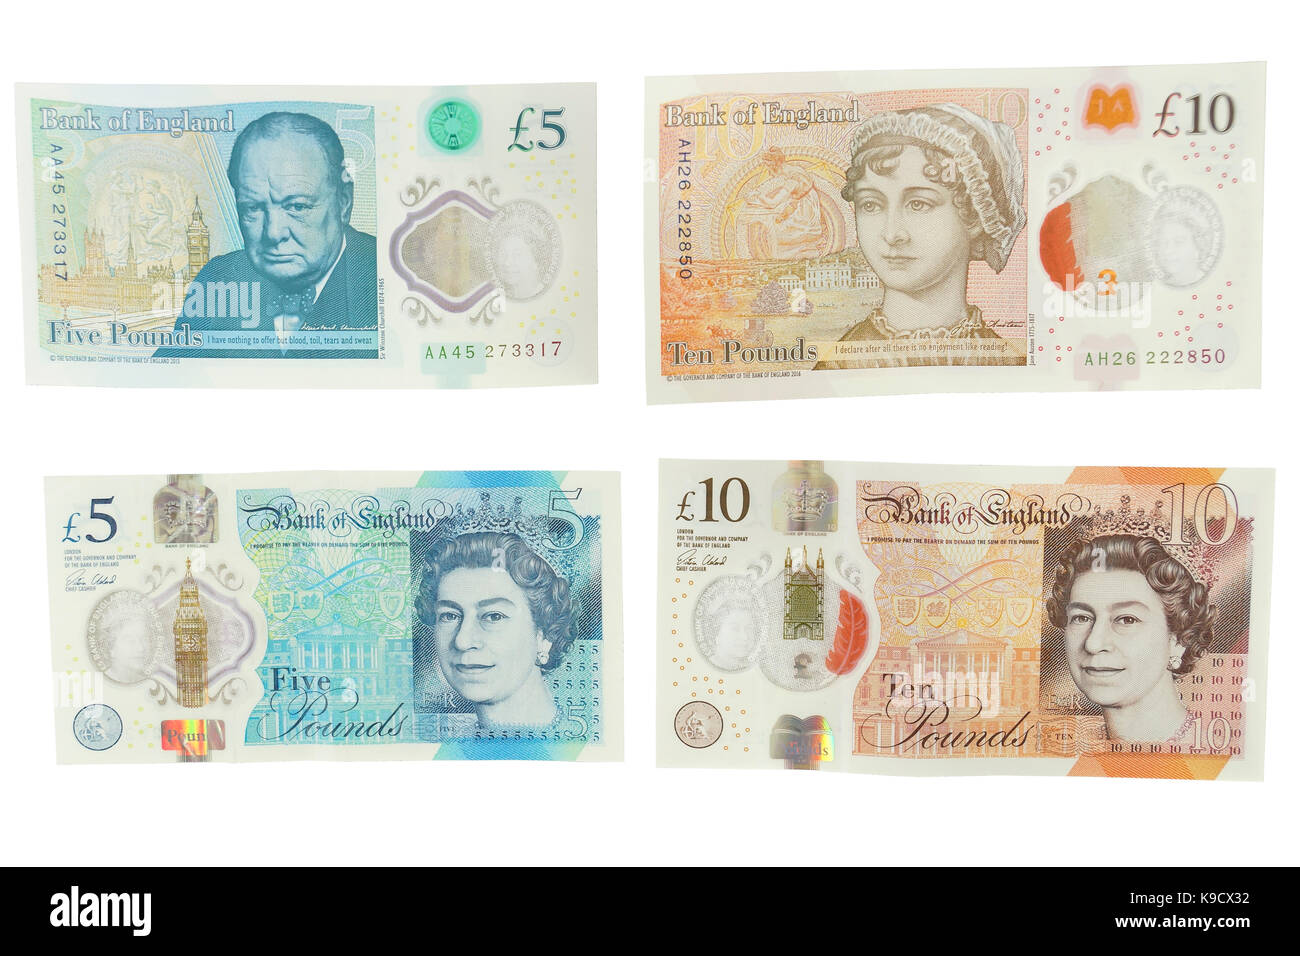 The newly introduced currency of the United Kingdom - The polymer ten pound (£10) note with features more measures - Stock Image